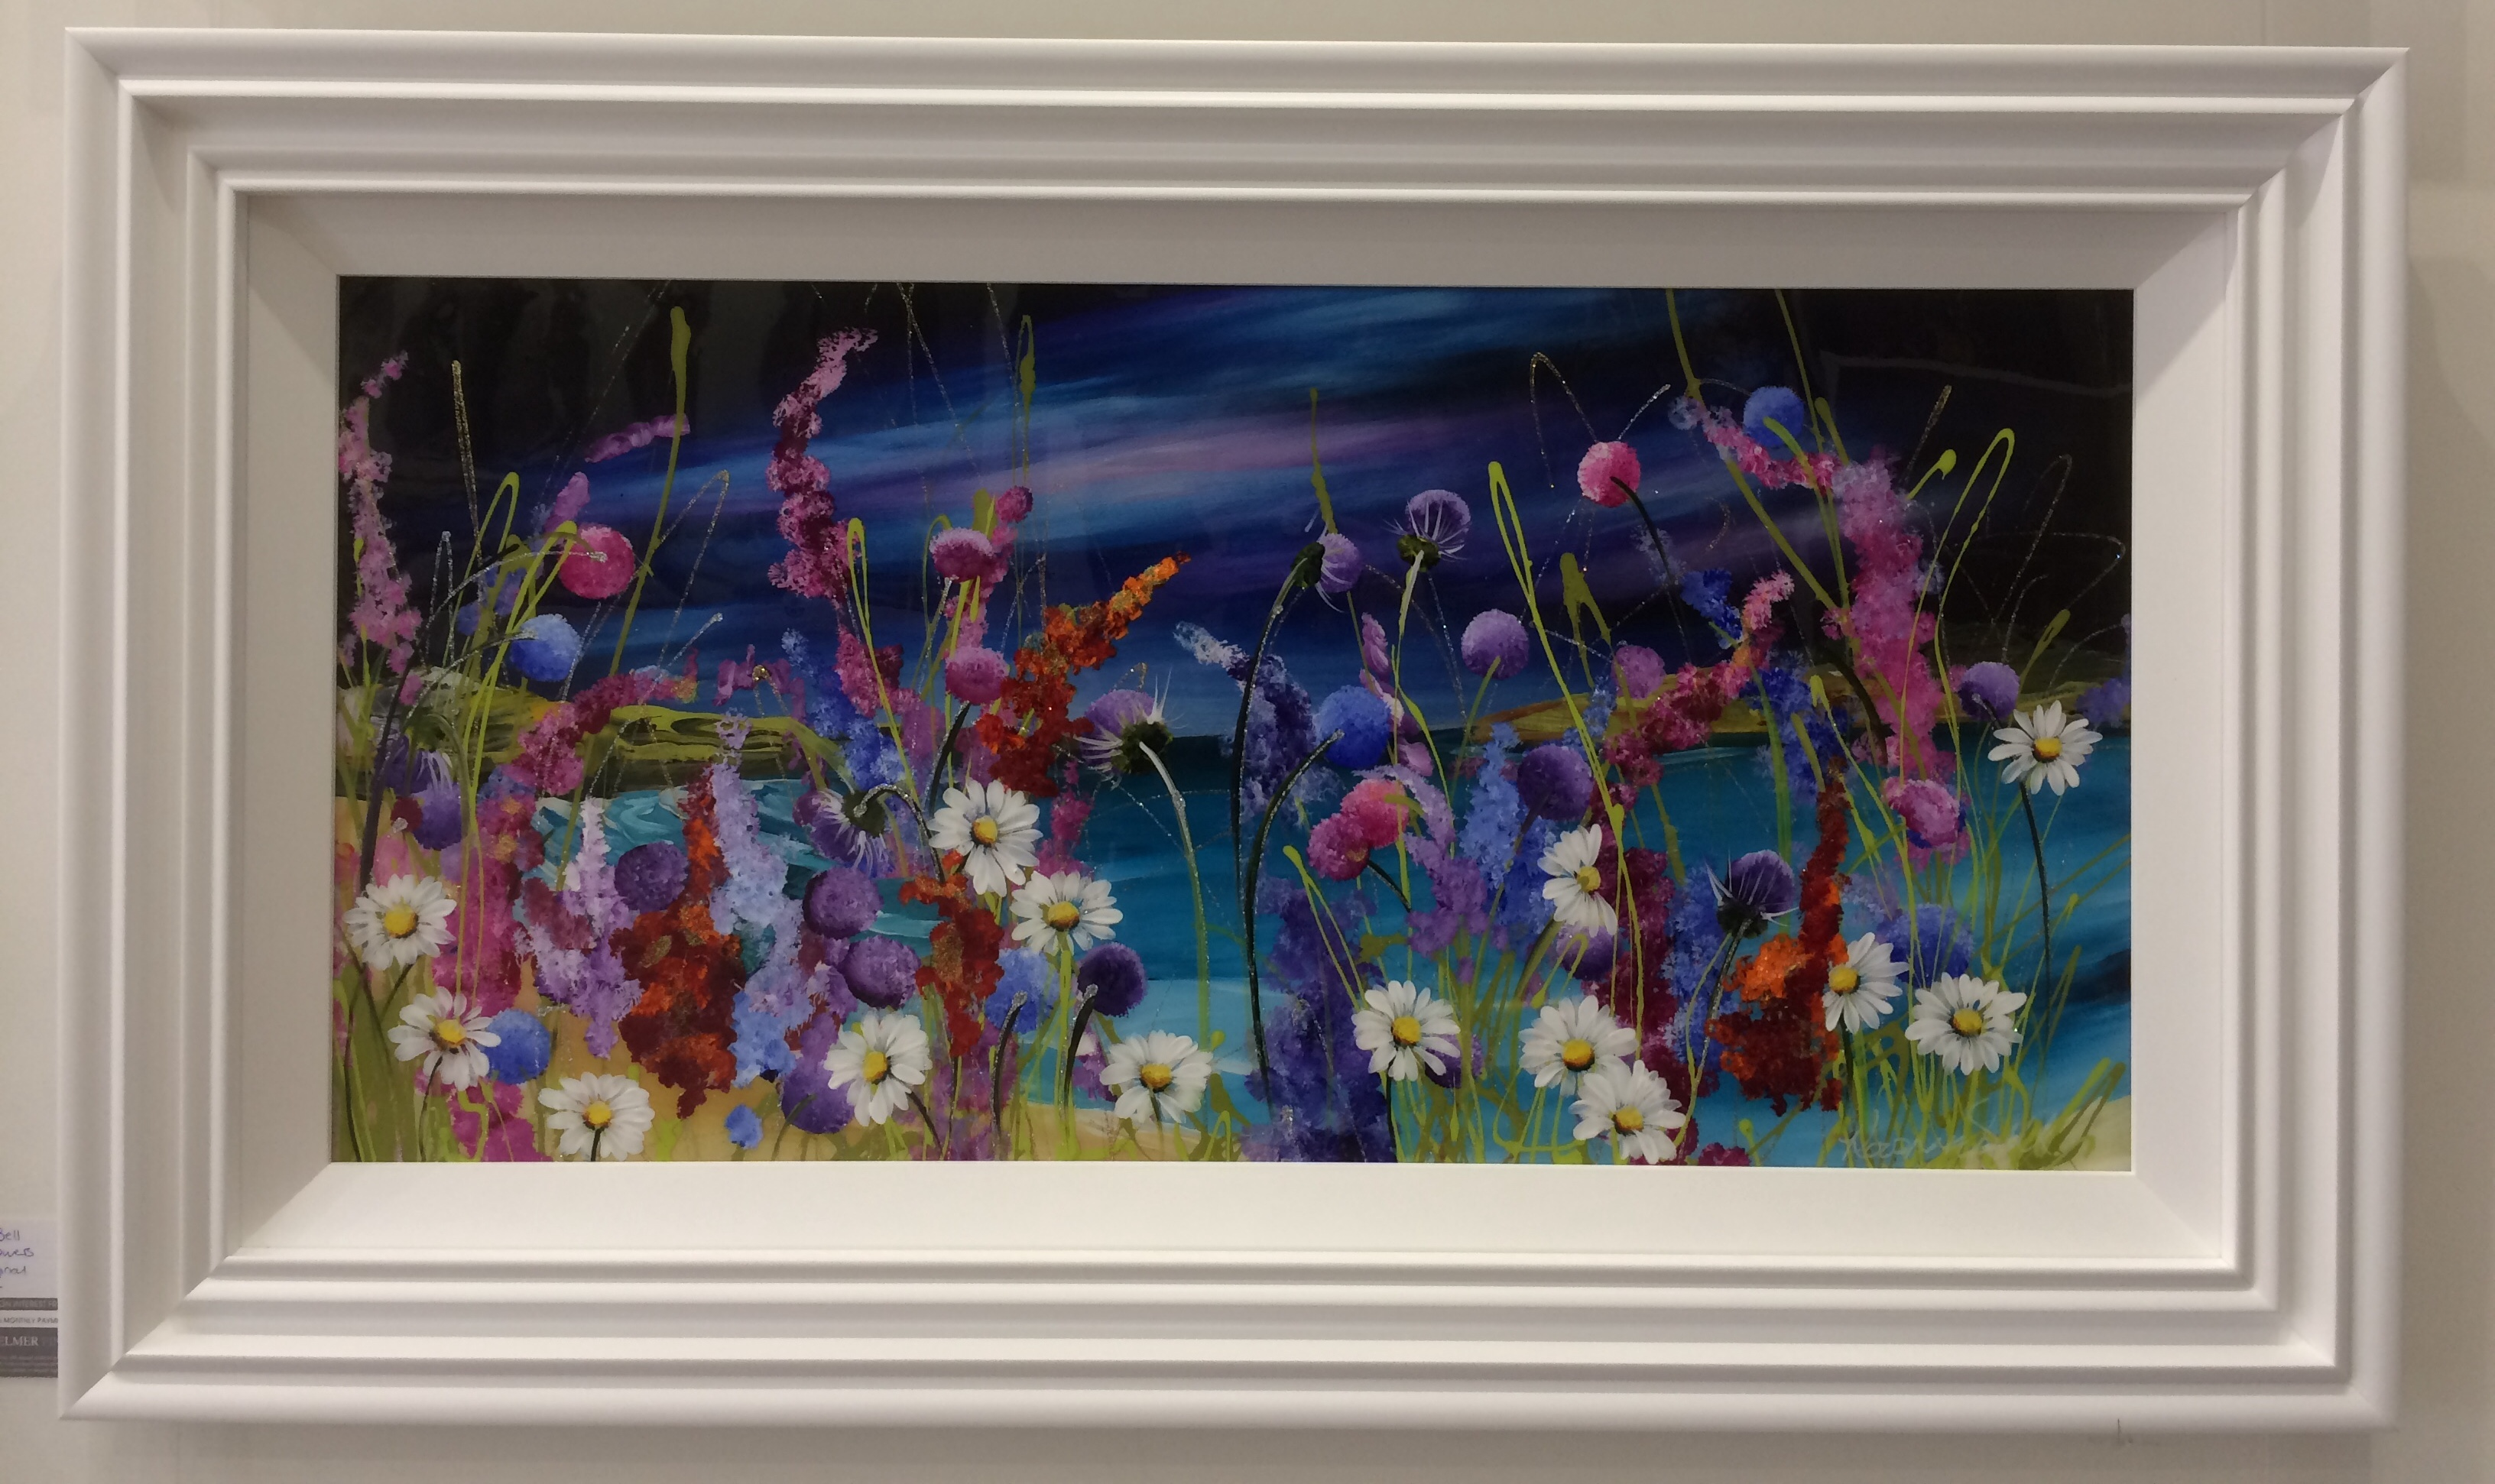 Wild Flowers (36 x 18) by Rozanne Bell